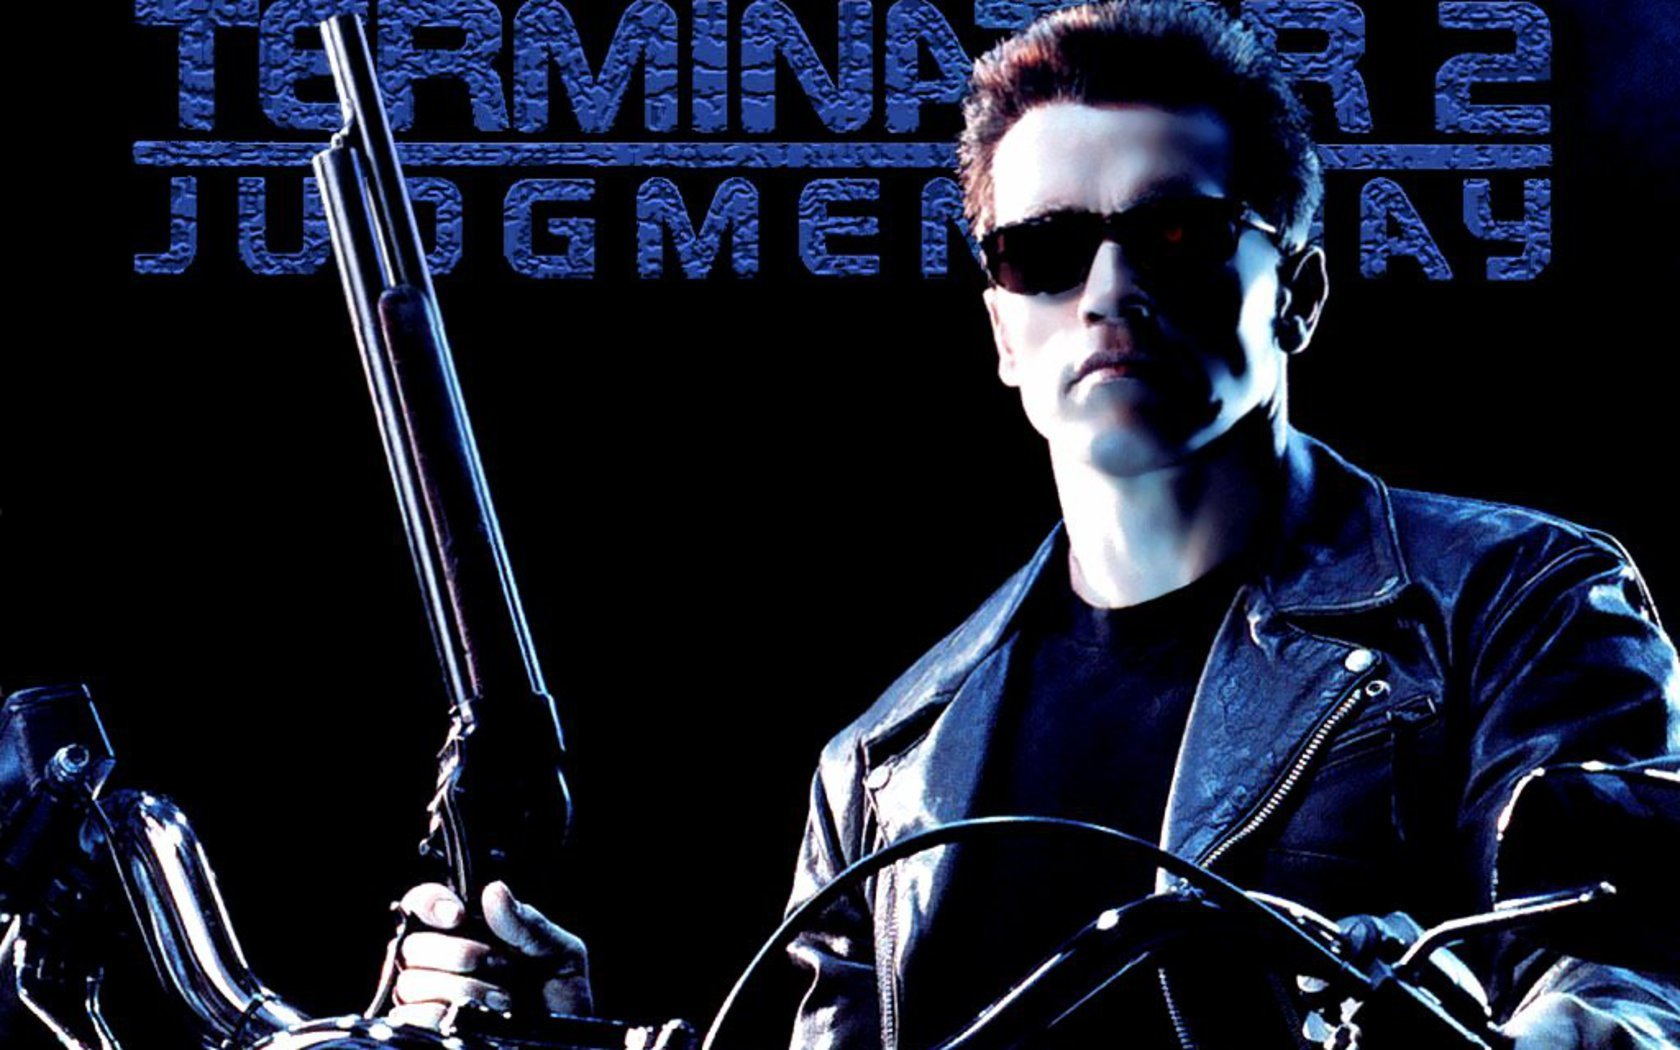 images Terminator 2 HD wallpaper and background photos 9844417 1680x1050